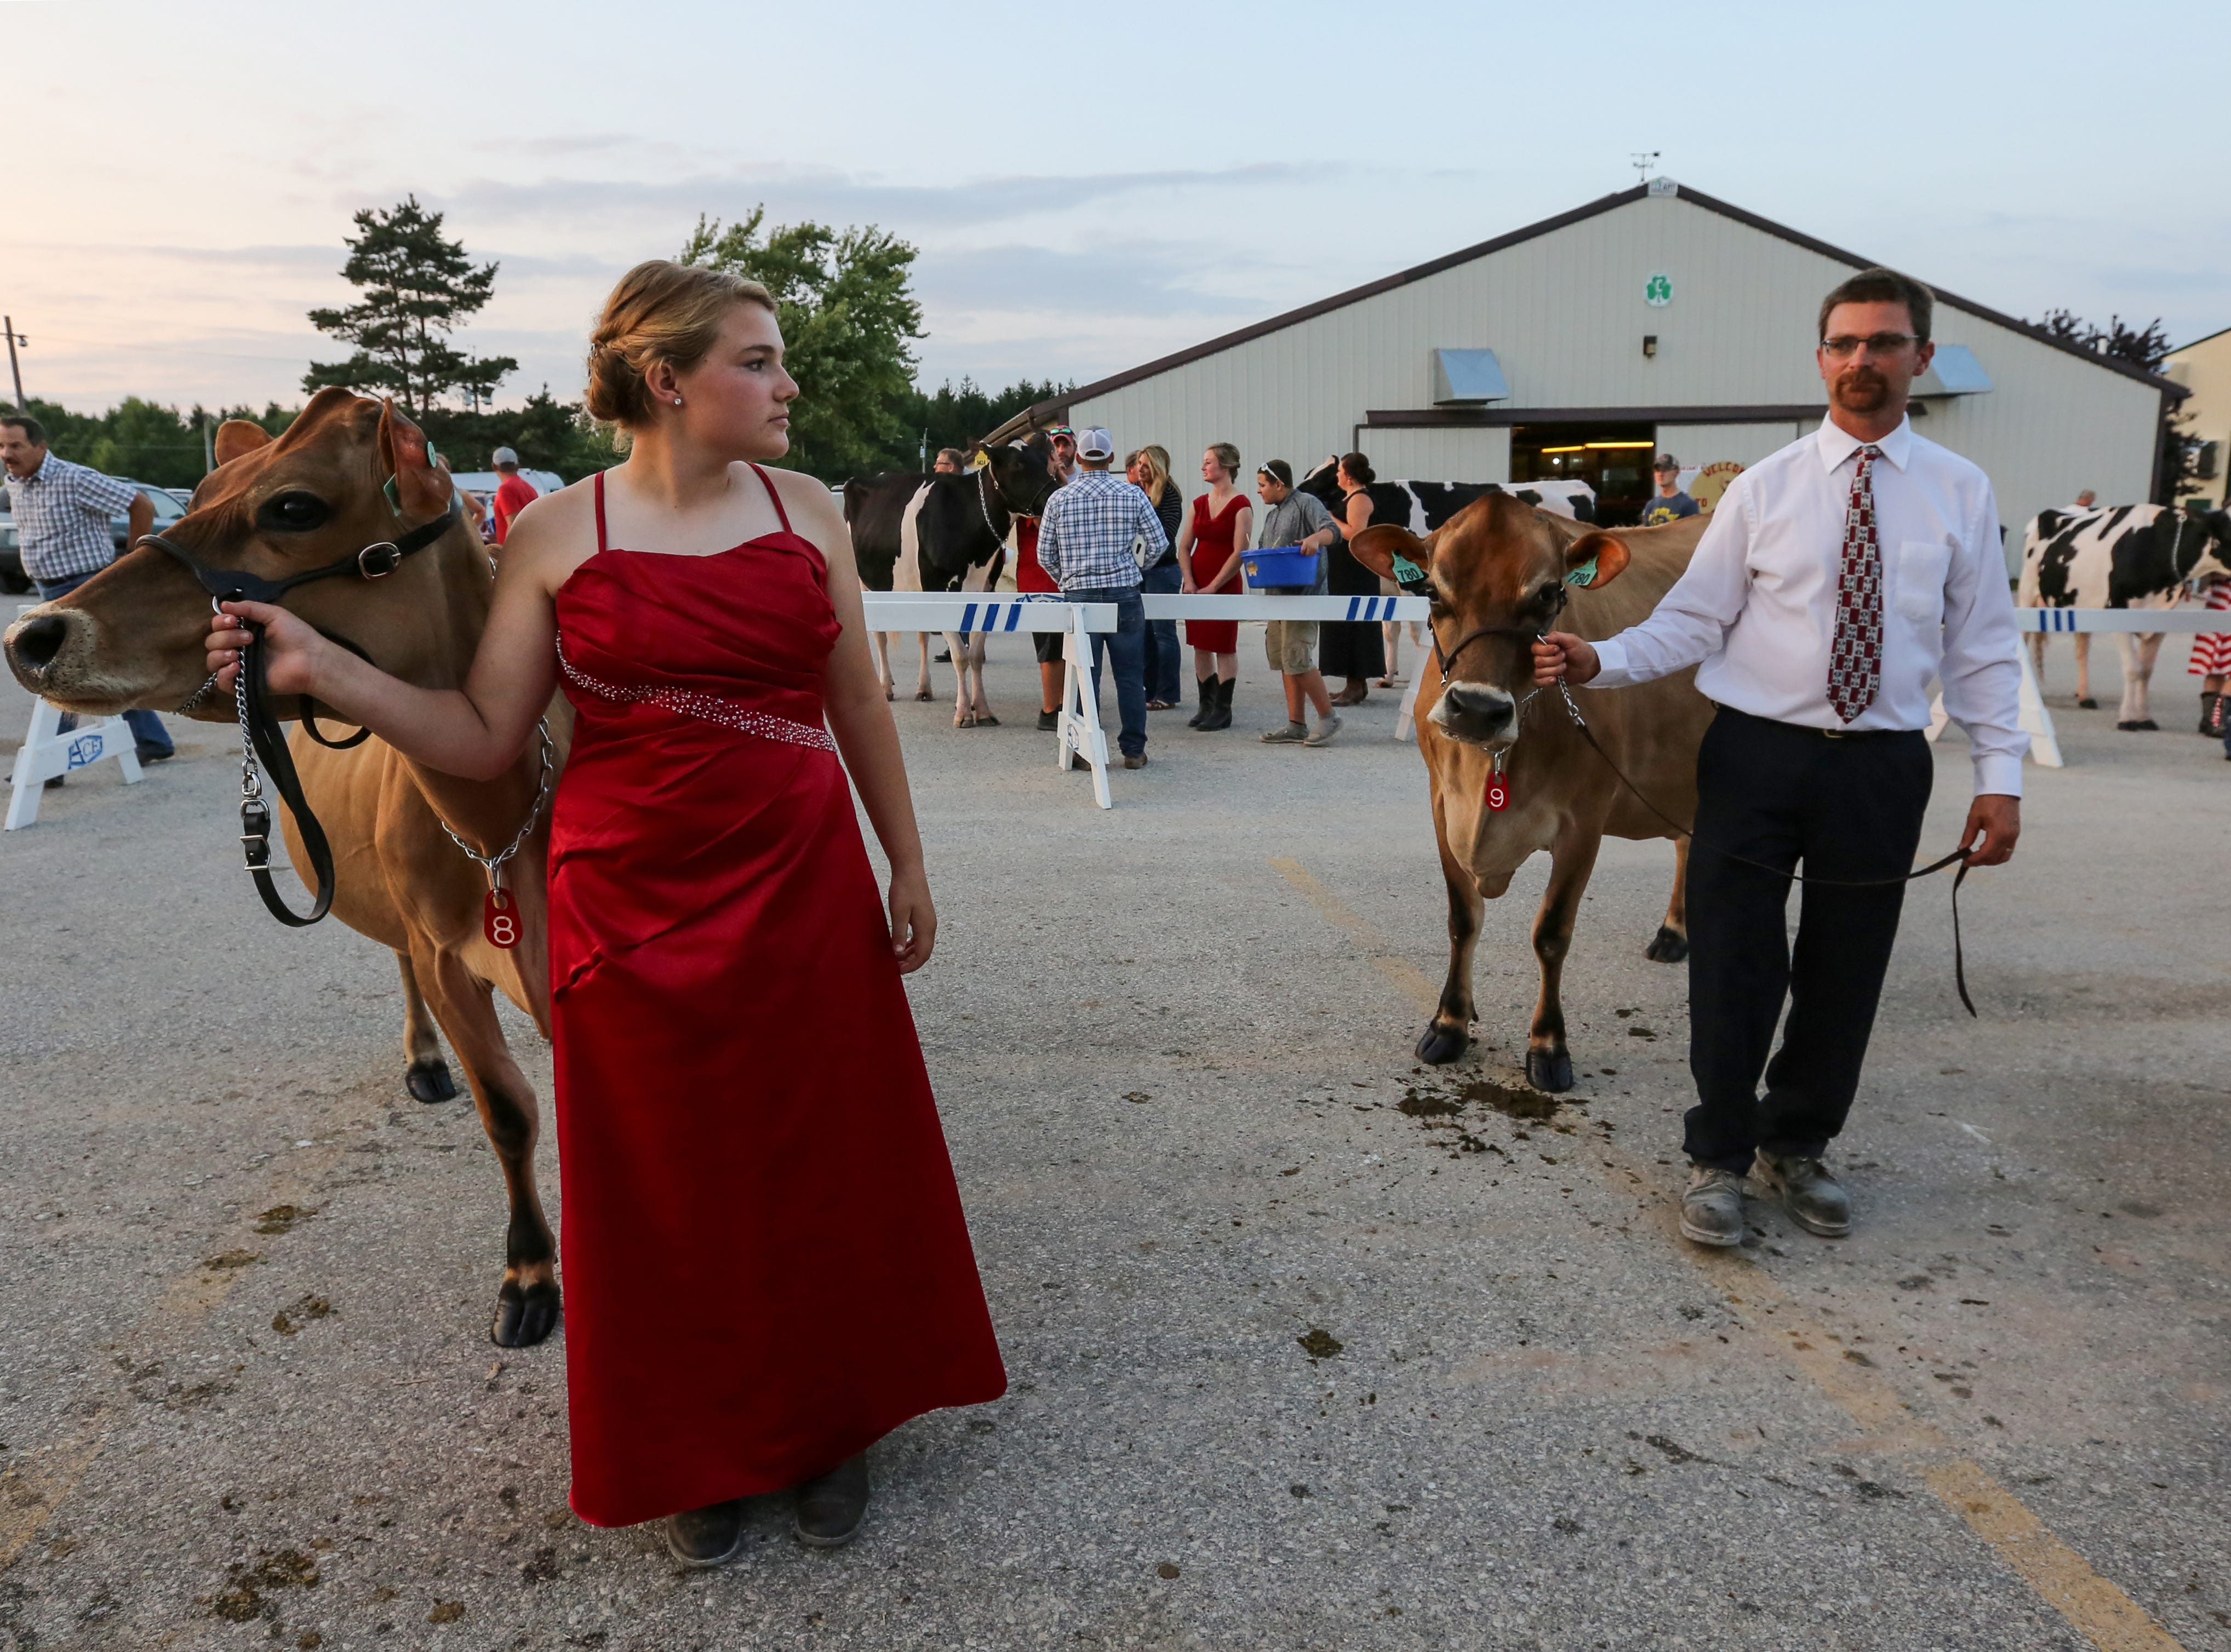 Emma and Ben Vos of Proud Heritage Jerseys in Maribel wait with their Jersey cows for their entrance during the Manitowoc Culver's Futurity at the Manitowoc County Fair Saturday, August 25, 2018, in Manitowoc, Wis. All the cows in this years' show were entered three years ago as young calves. Josh Clark/USA TODAY NETWORK-Wisconsin